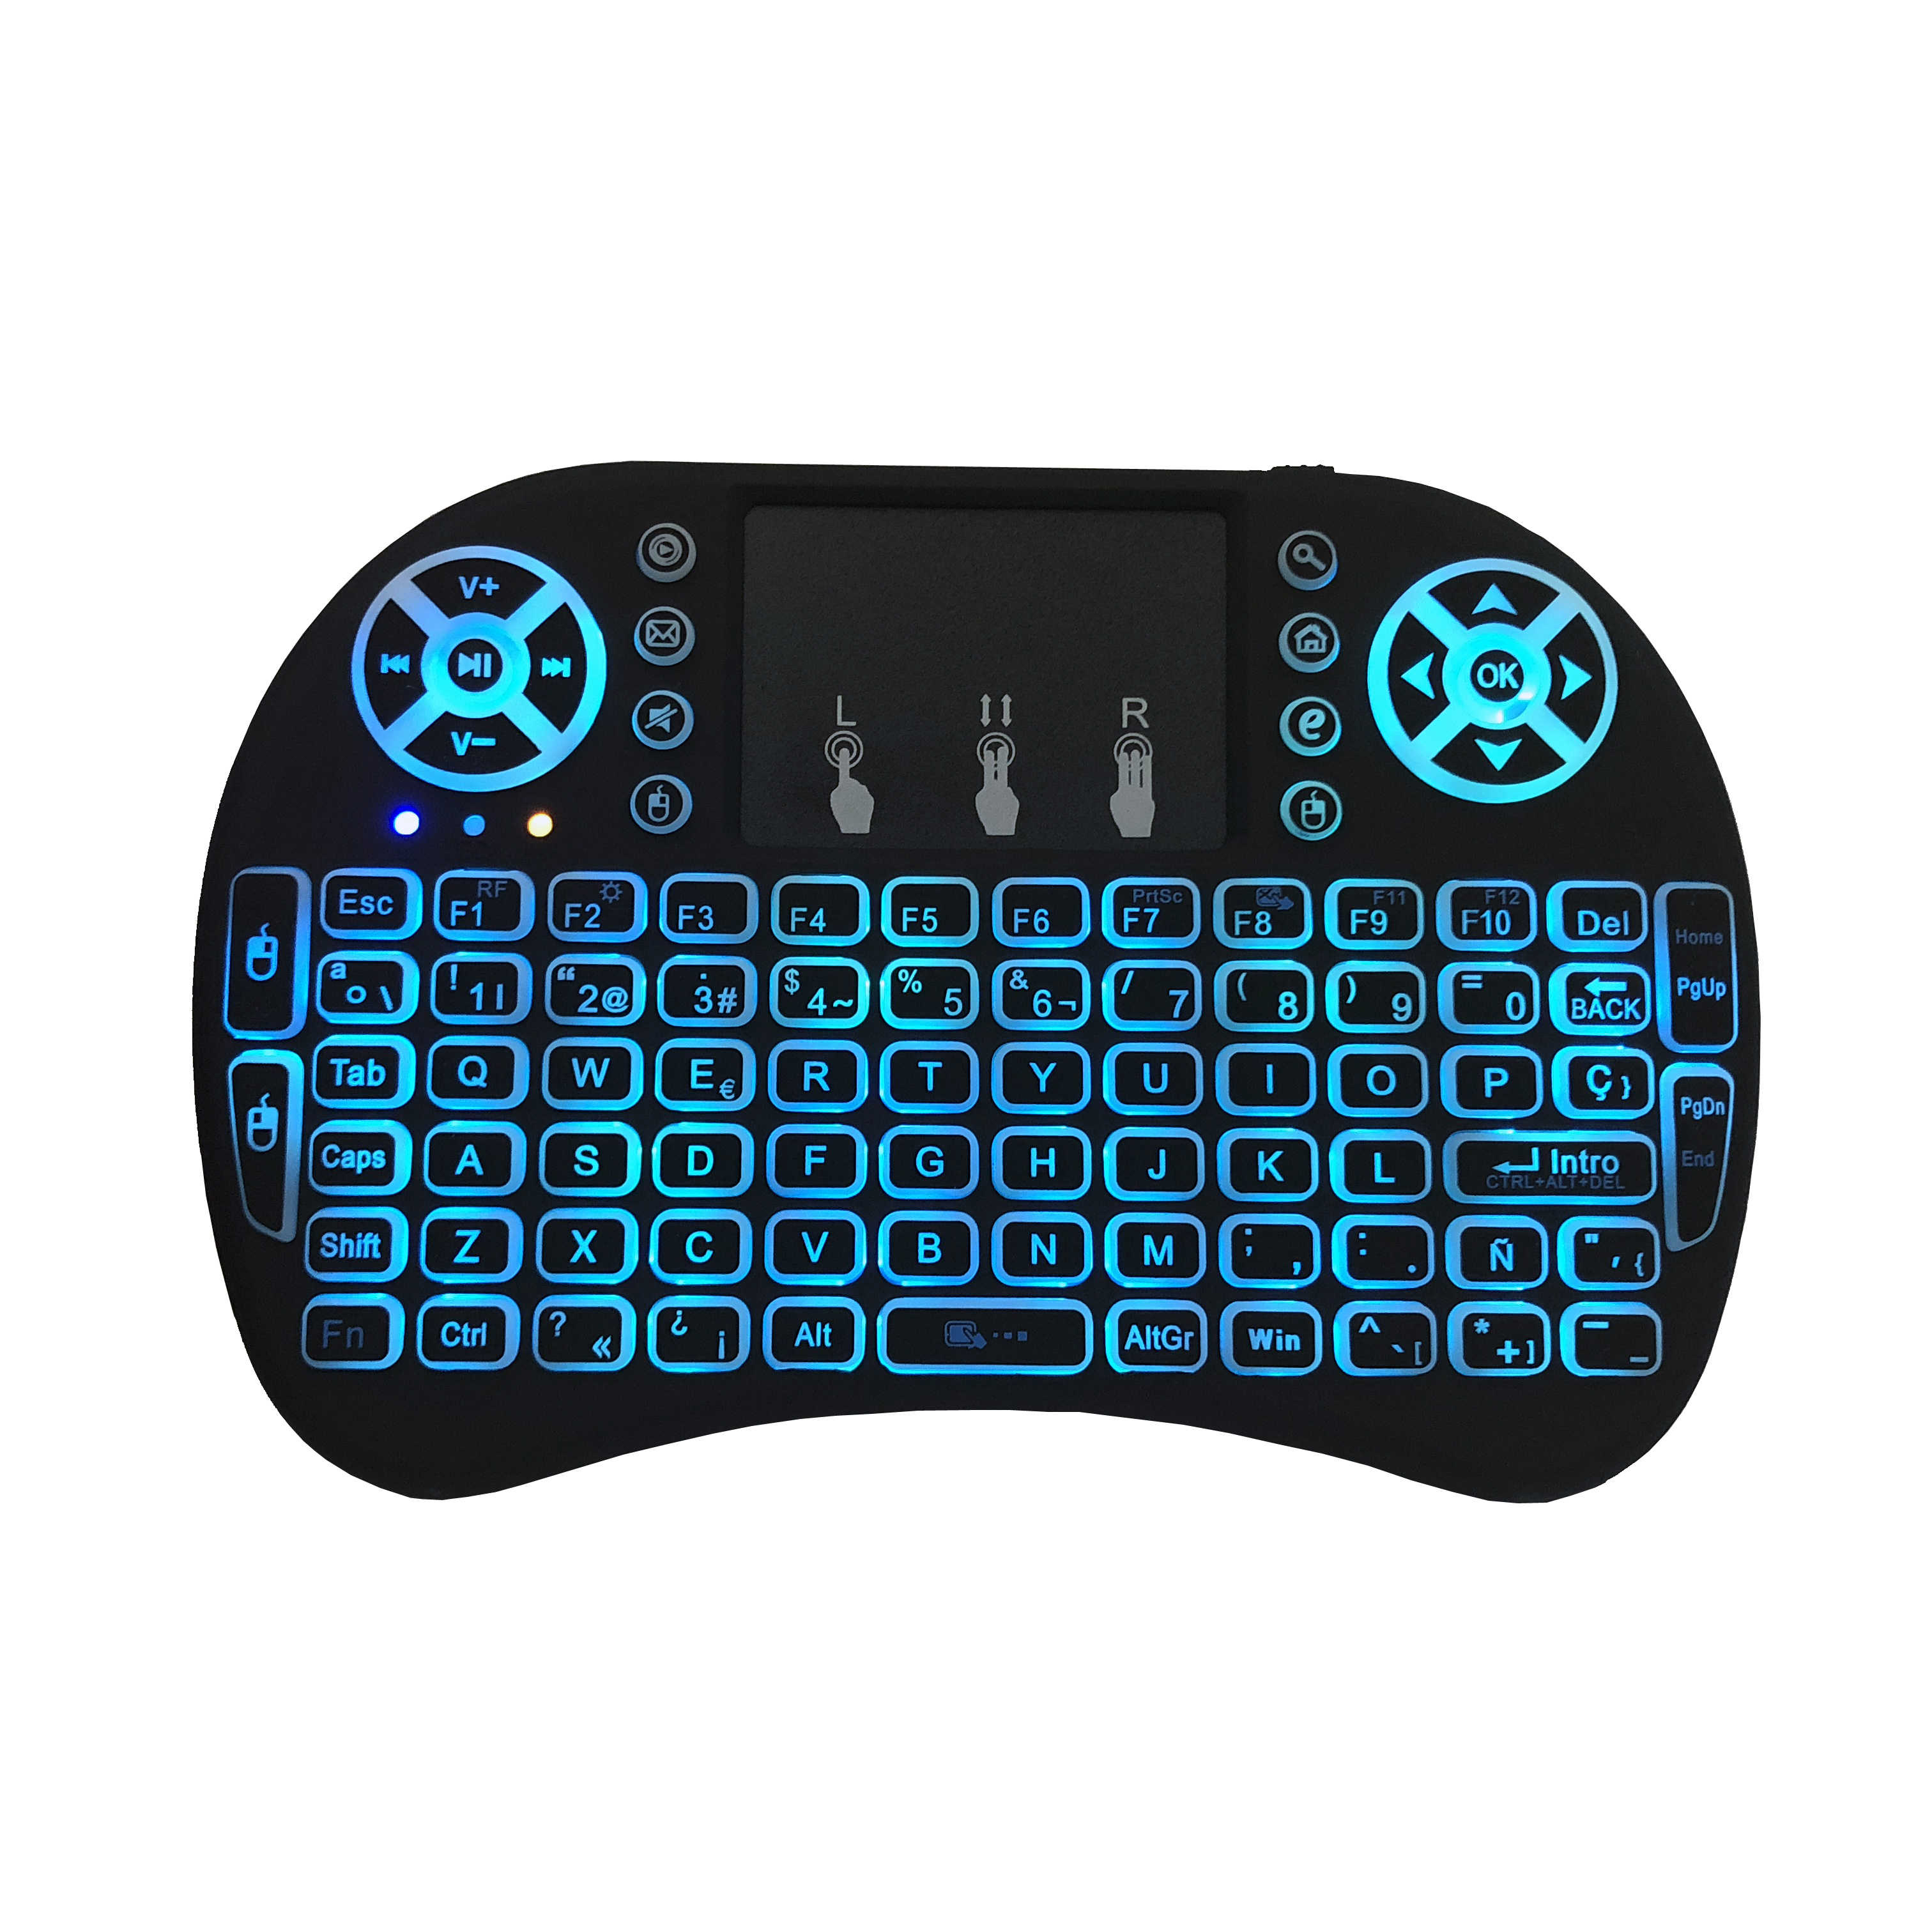 Image 4 - Spanish i8 mini keyboard 3 color backlit i8+ lithium battery backlight Air Mouse Remote Control Touchpad Handheld TV BOX Laptop-in Keyboards from Computer & Office